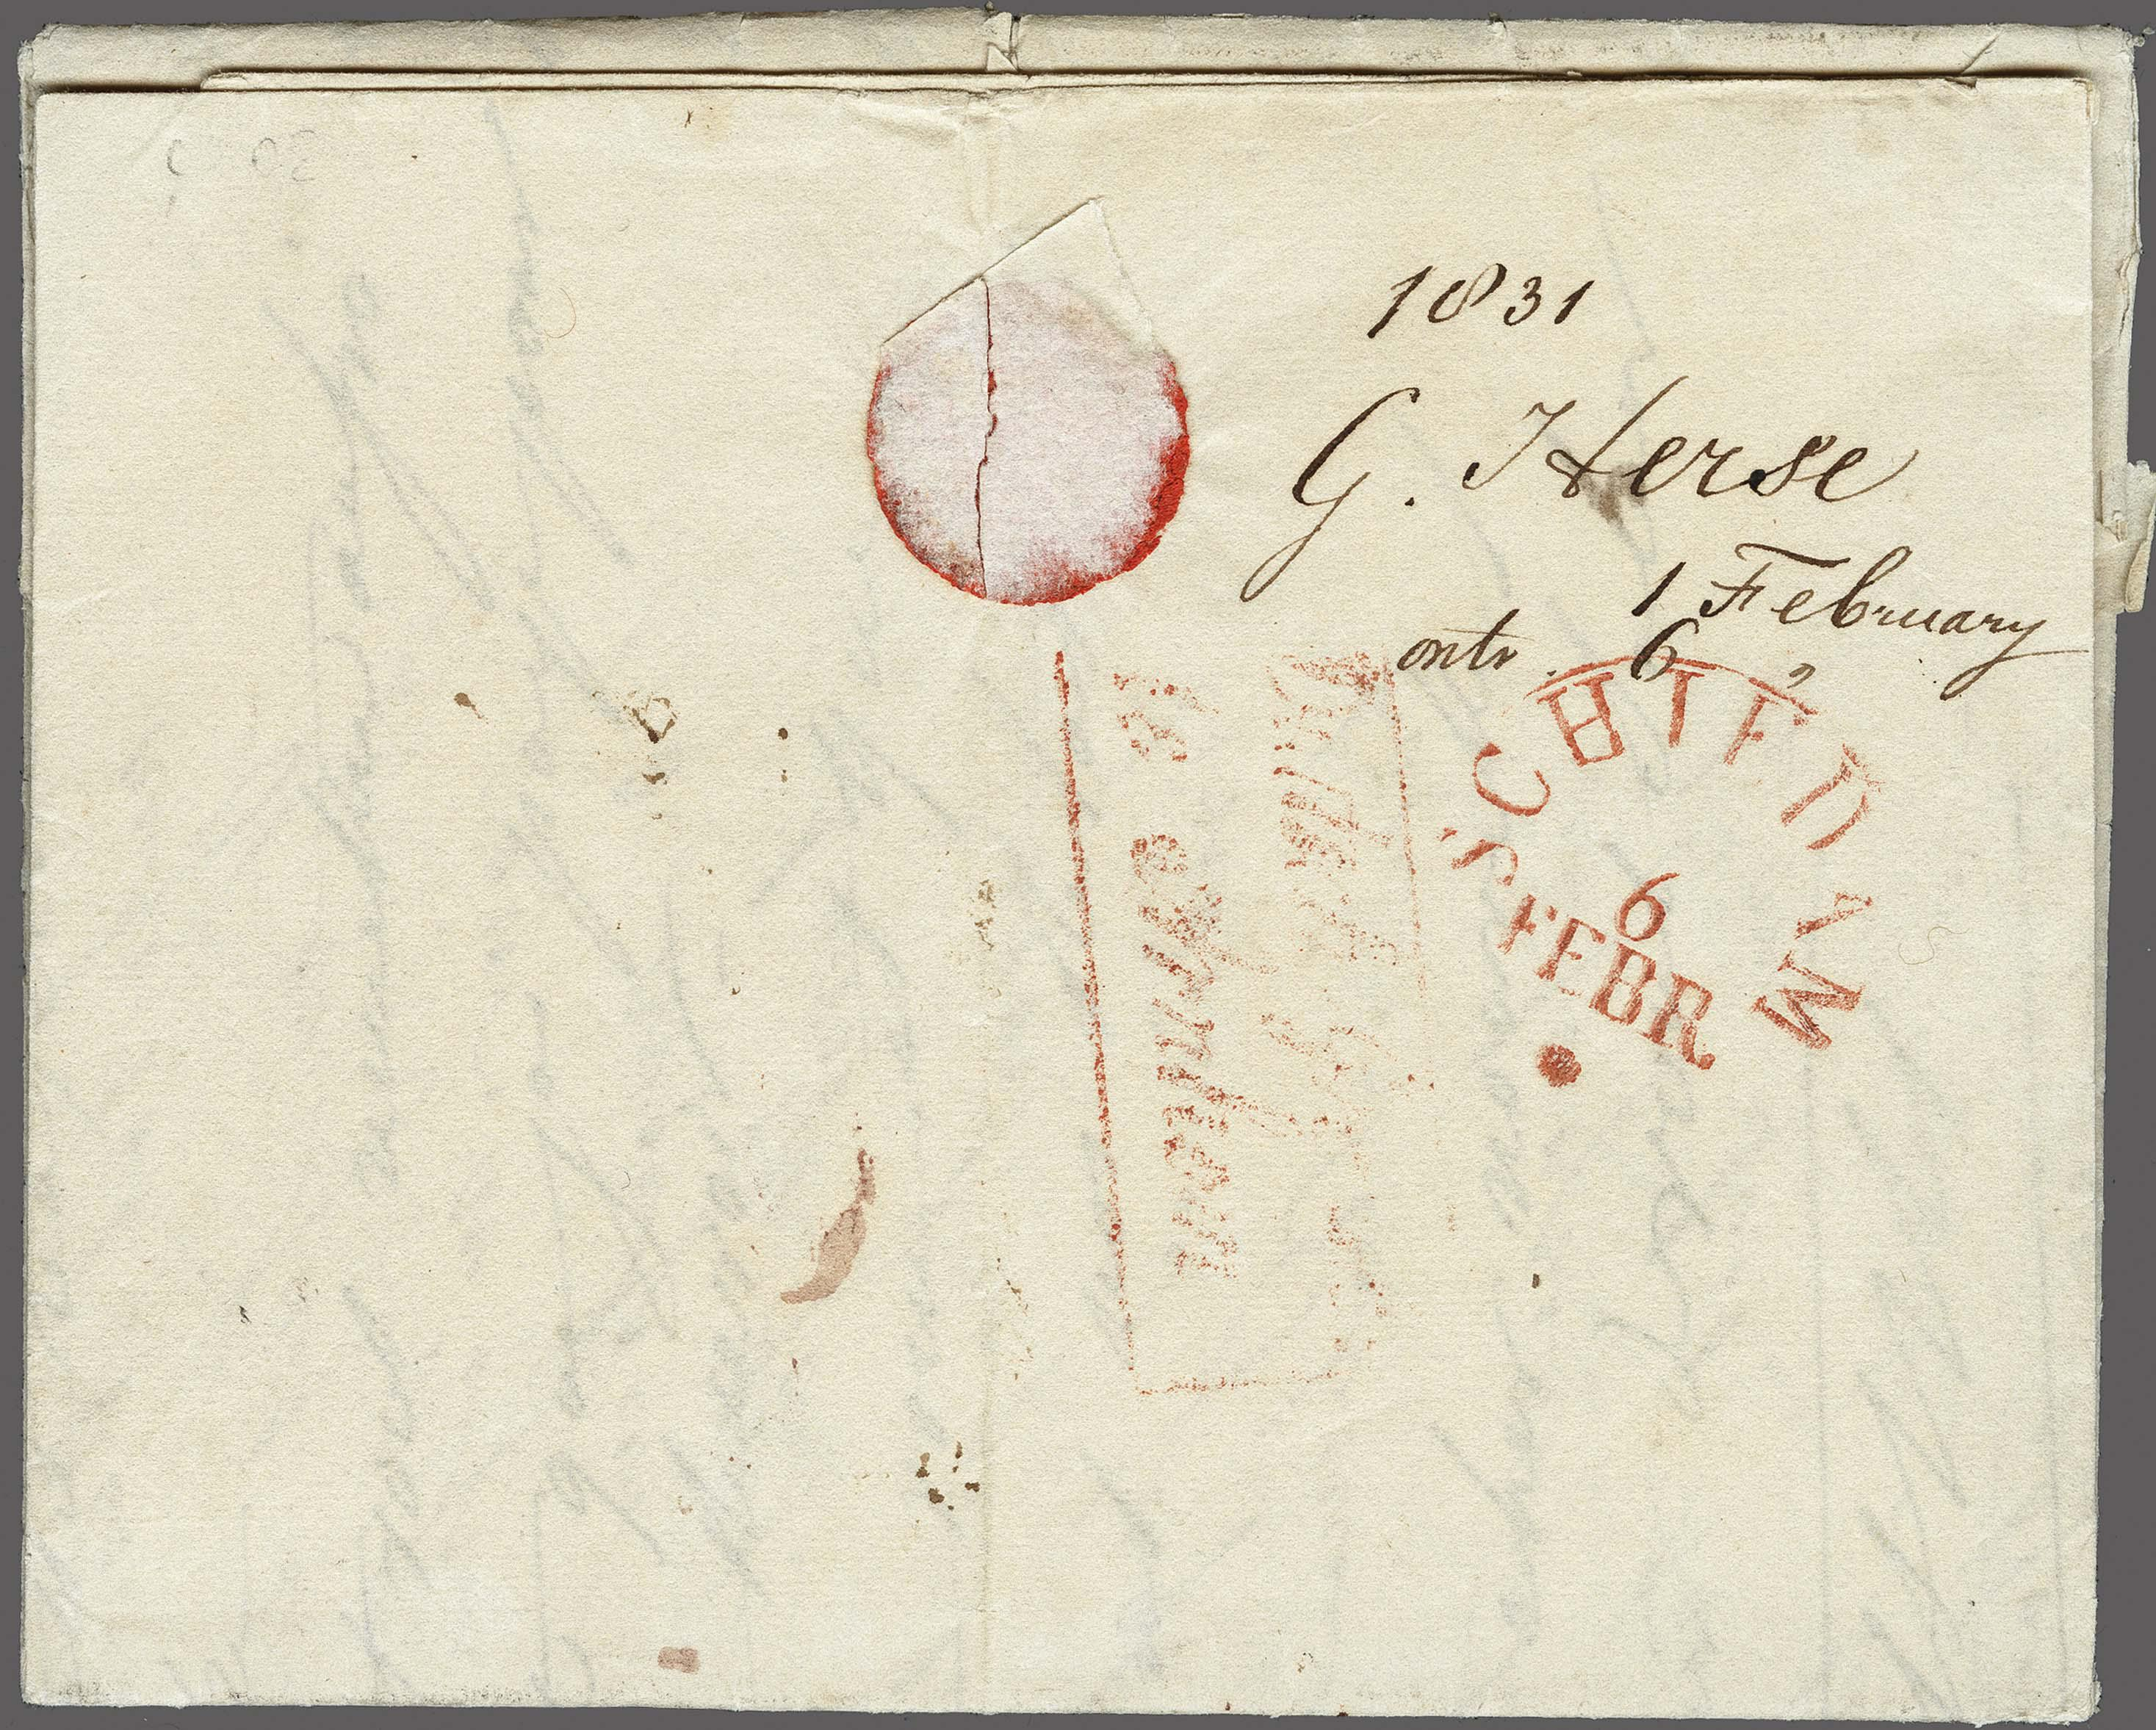 Lot 2461 - Netherlands and former colonies Netherlands -  Corinphila Veilingen Auction 250-253 - Day 3 - Netherlands and former colonies - Single lots & Picture postcards